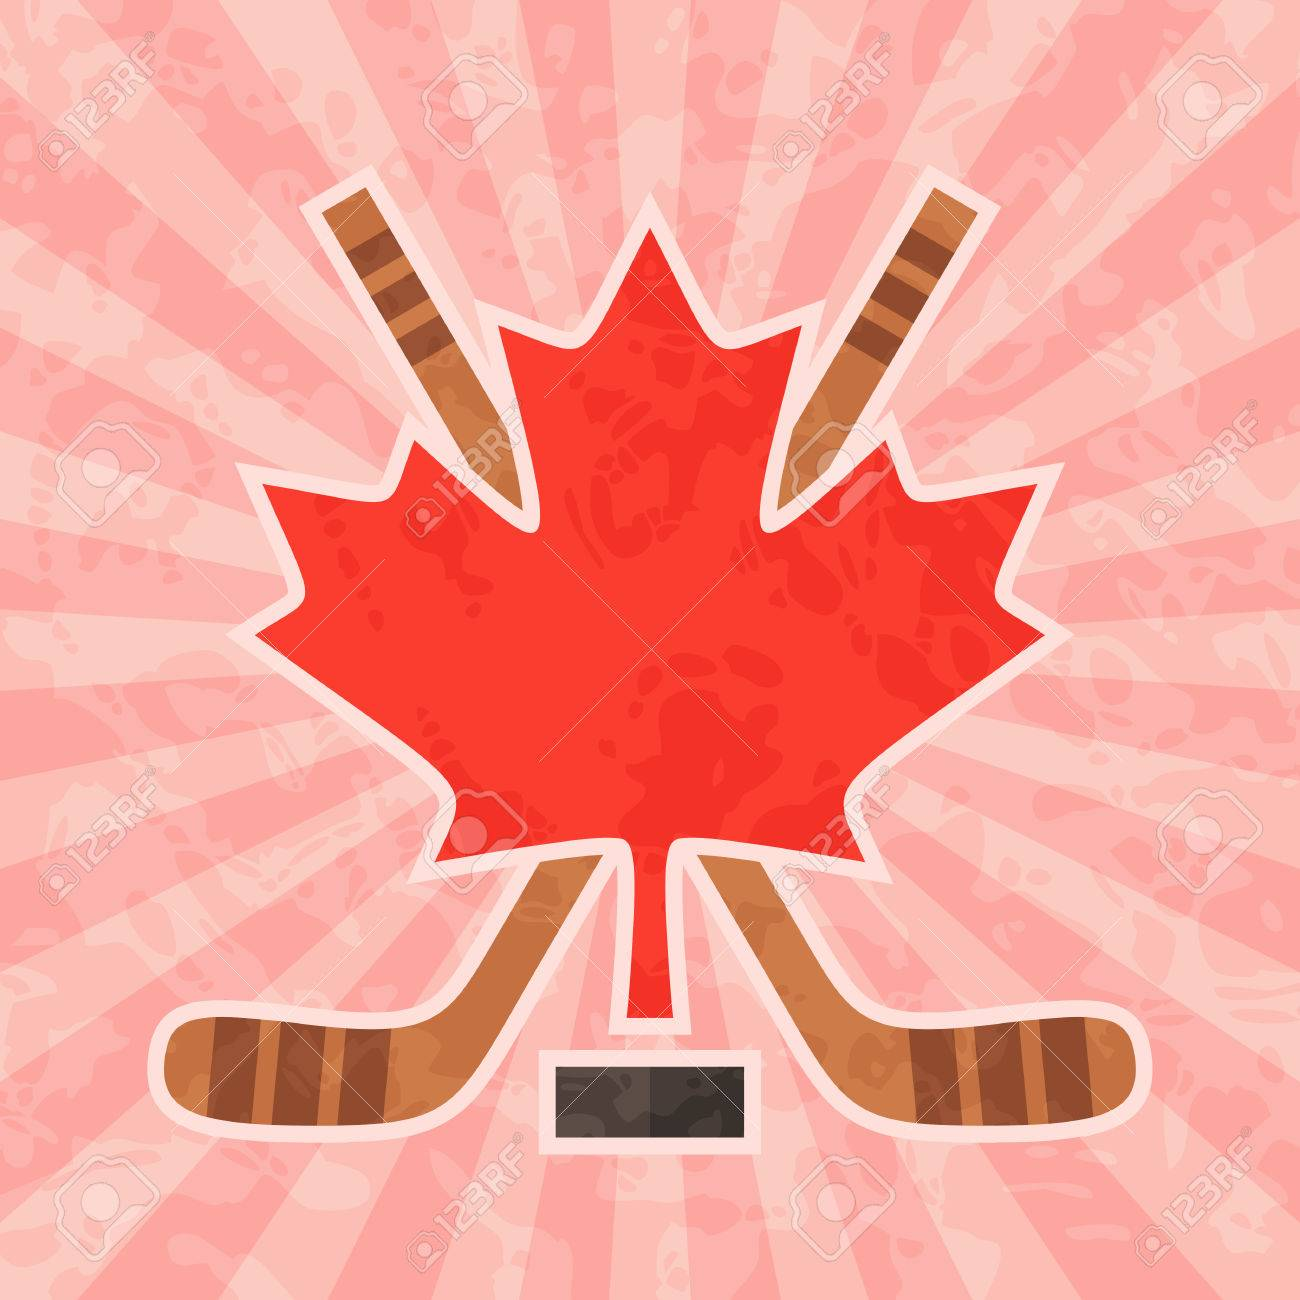 Ice Hockey In Canada Canadian Red Maple Leaf And Crossed Hockey